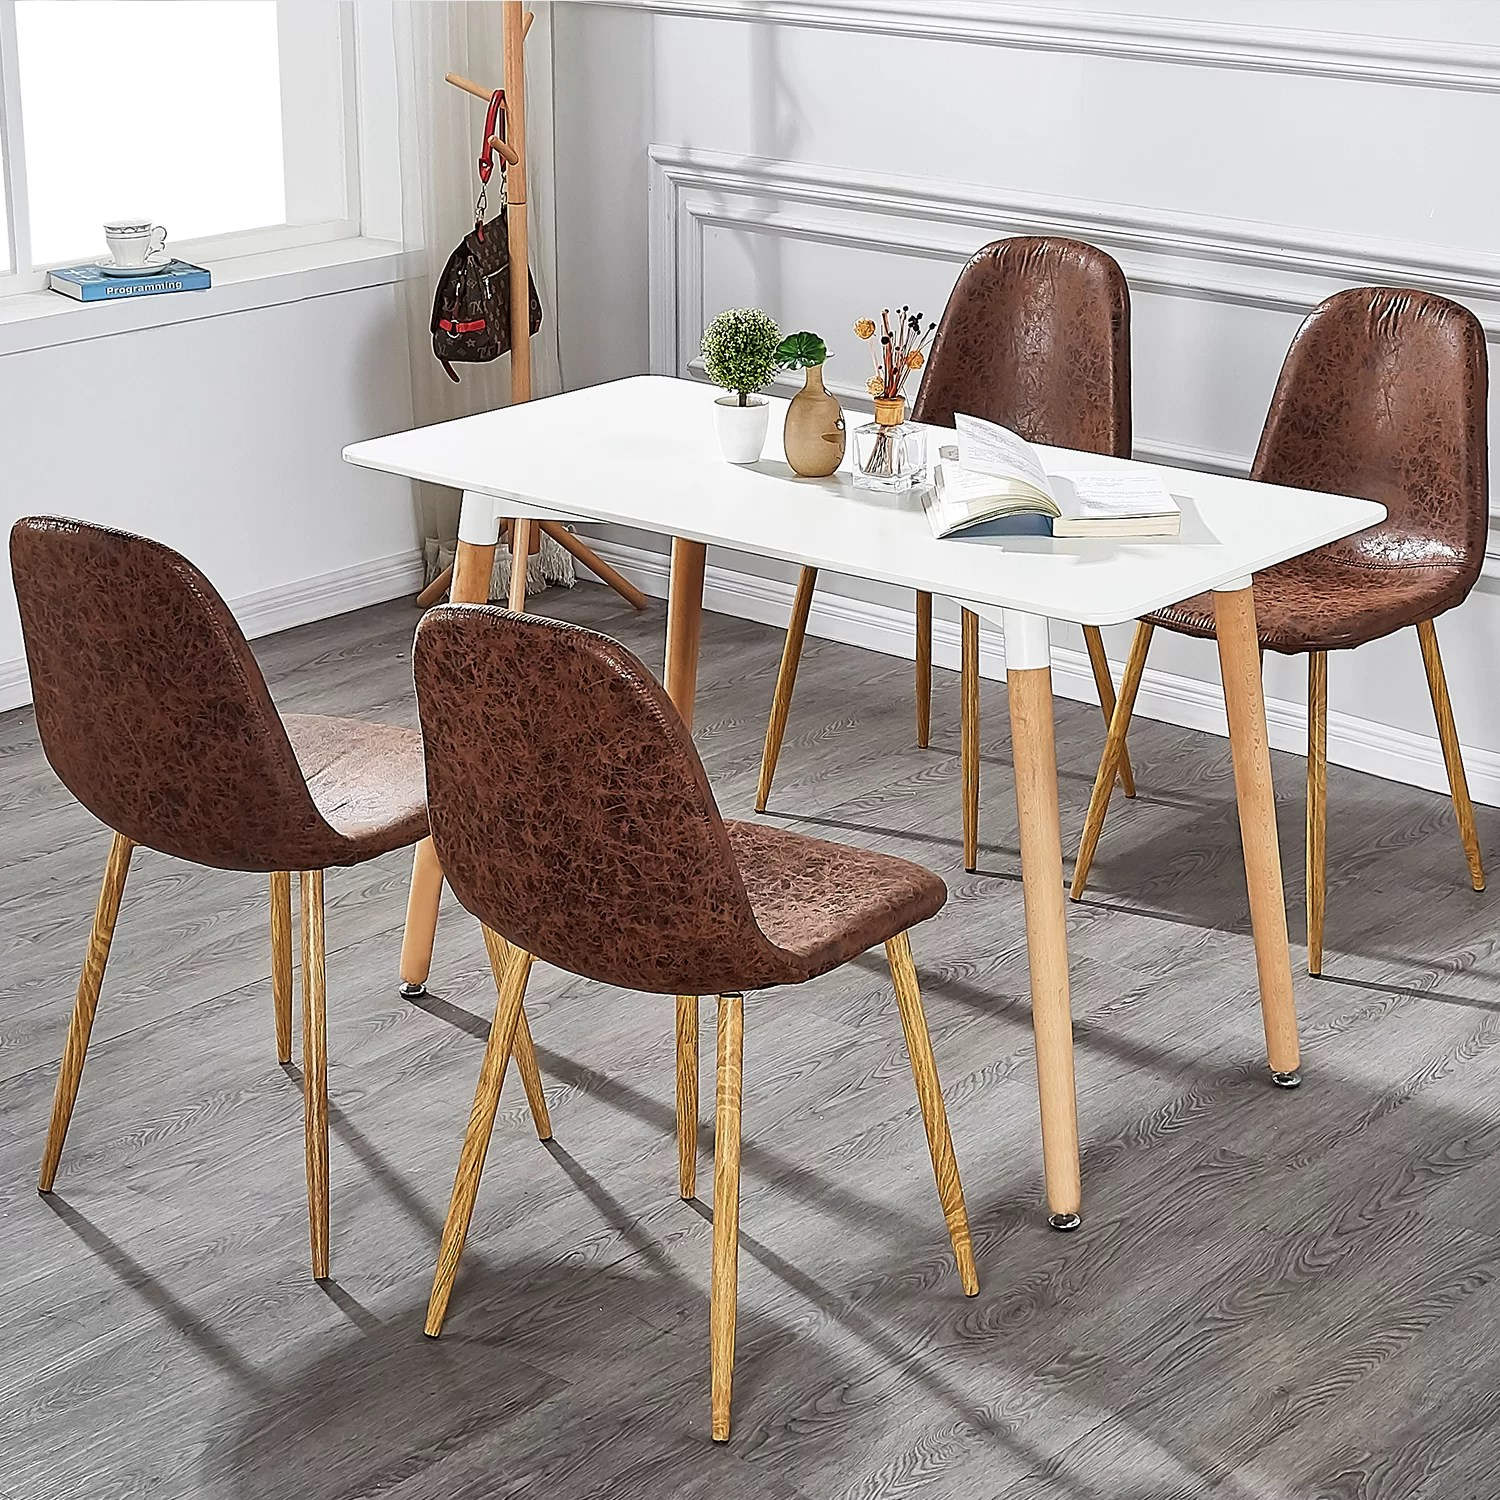 Dining Room Upholstered Chairs Fidela Upholstered Dining Chair